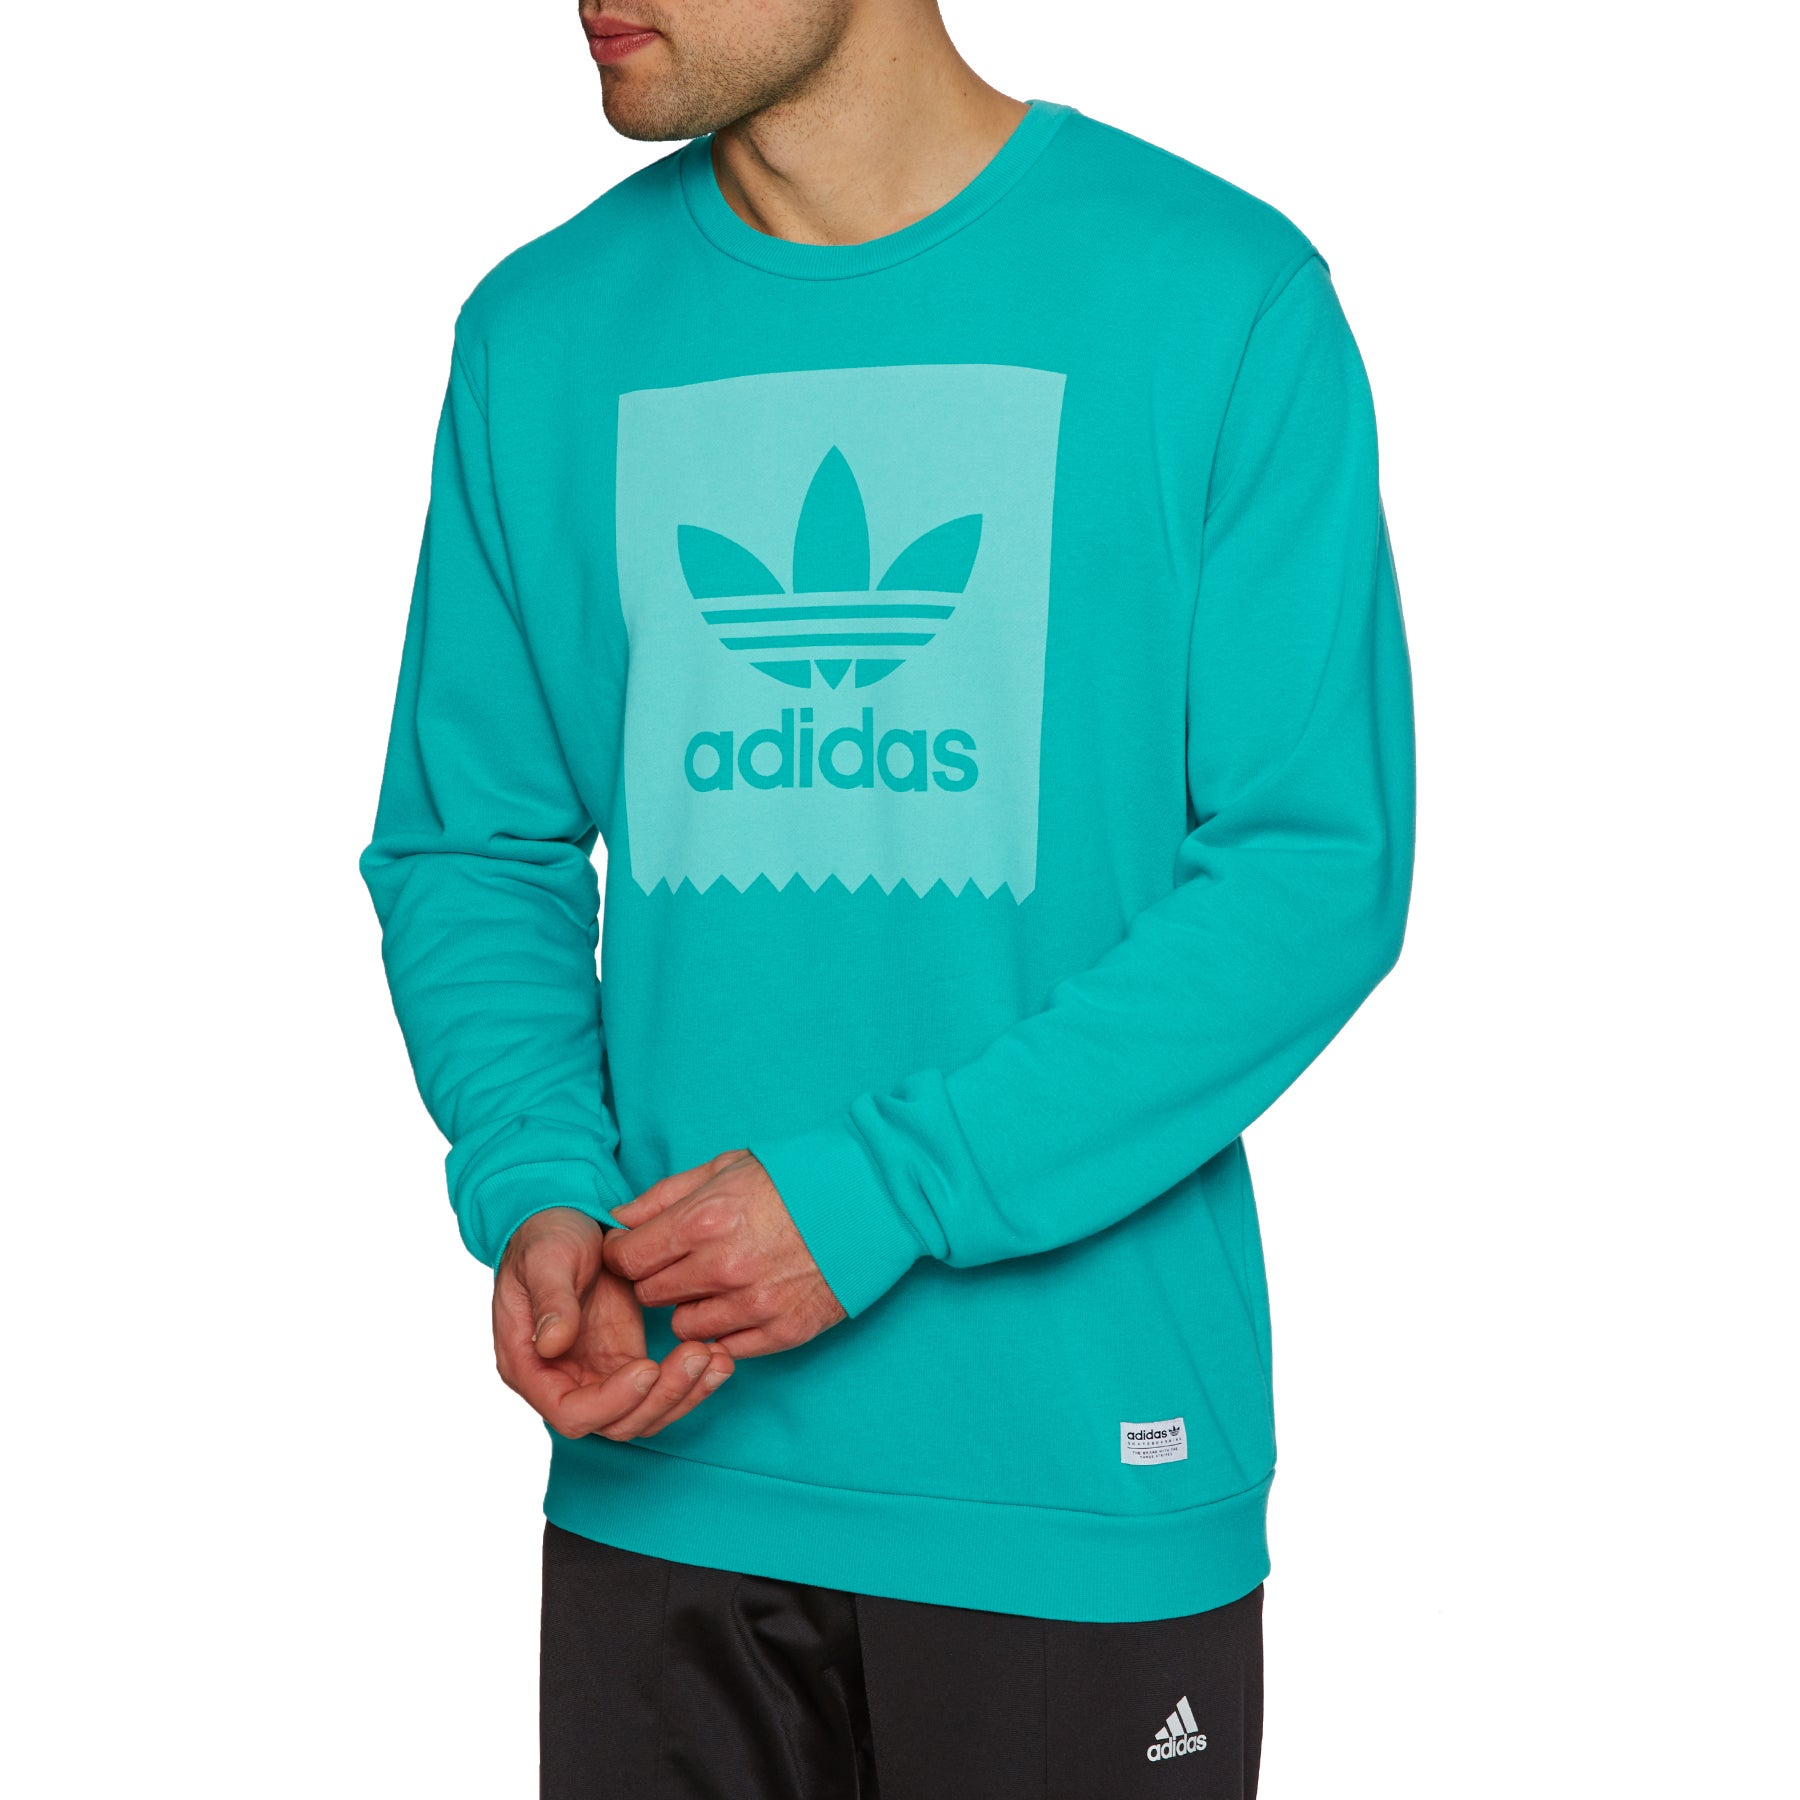 Adidas GD Crew Sweater